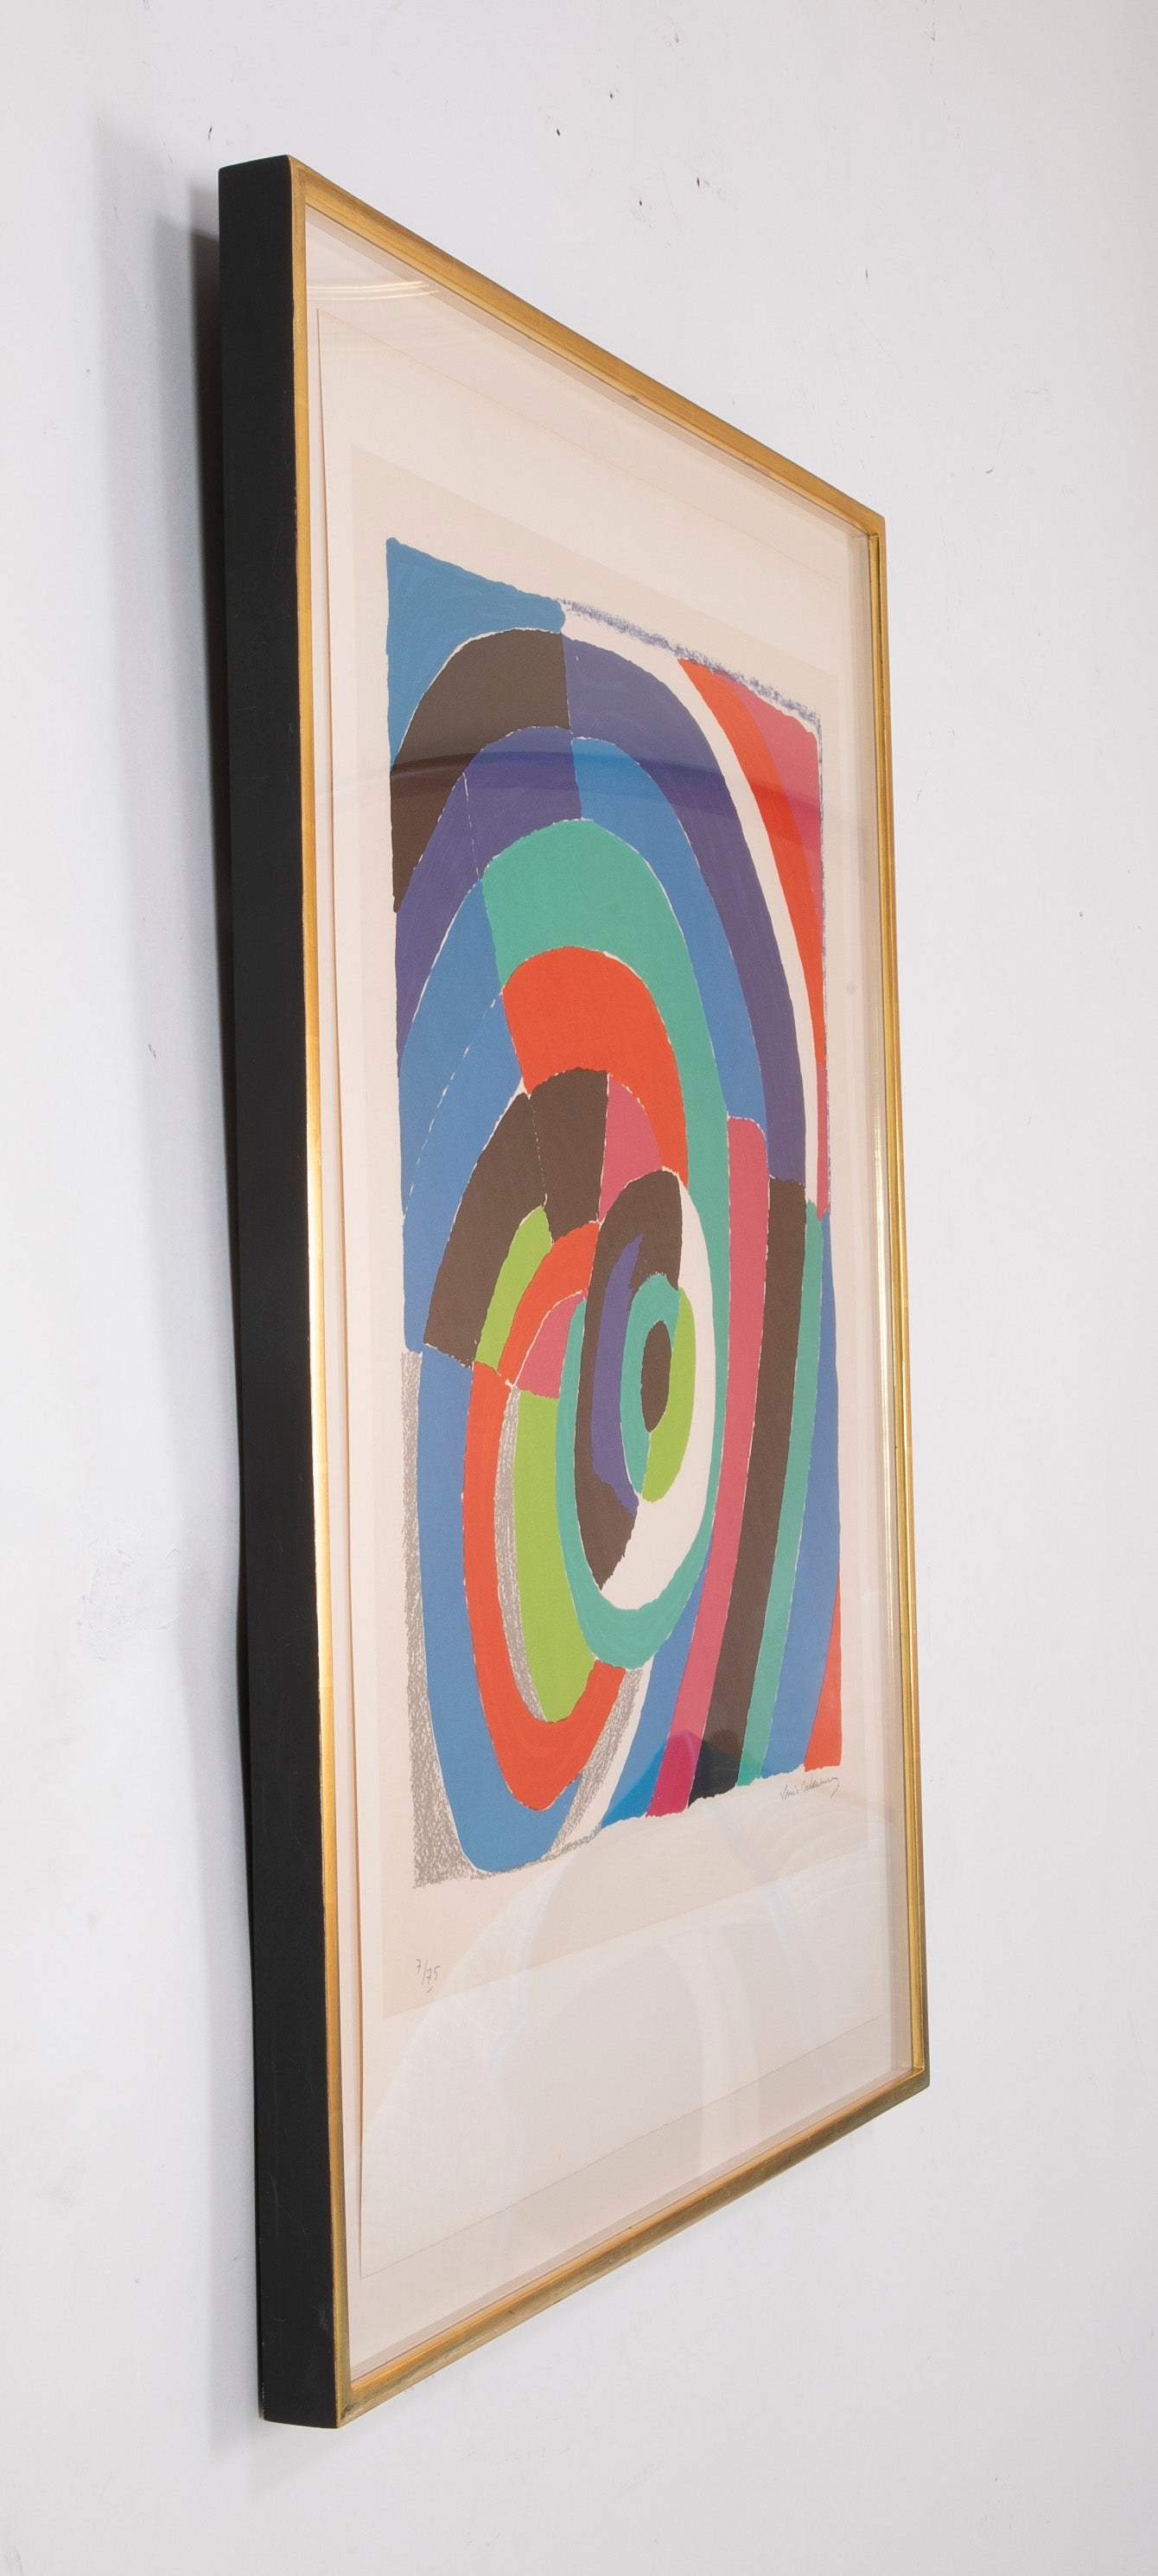 """L'oeil"" Lithograph in Colors by Sonia Delaunay"